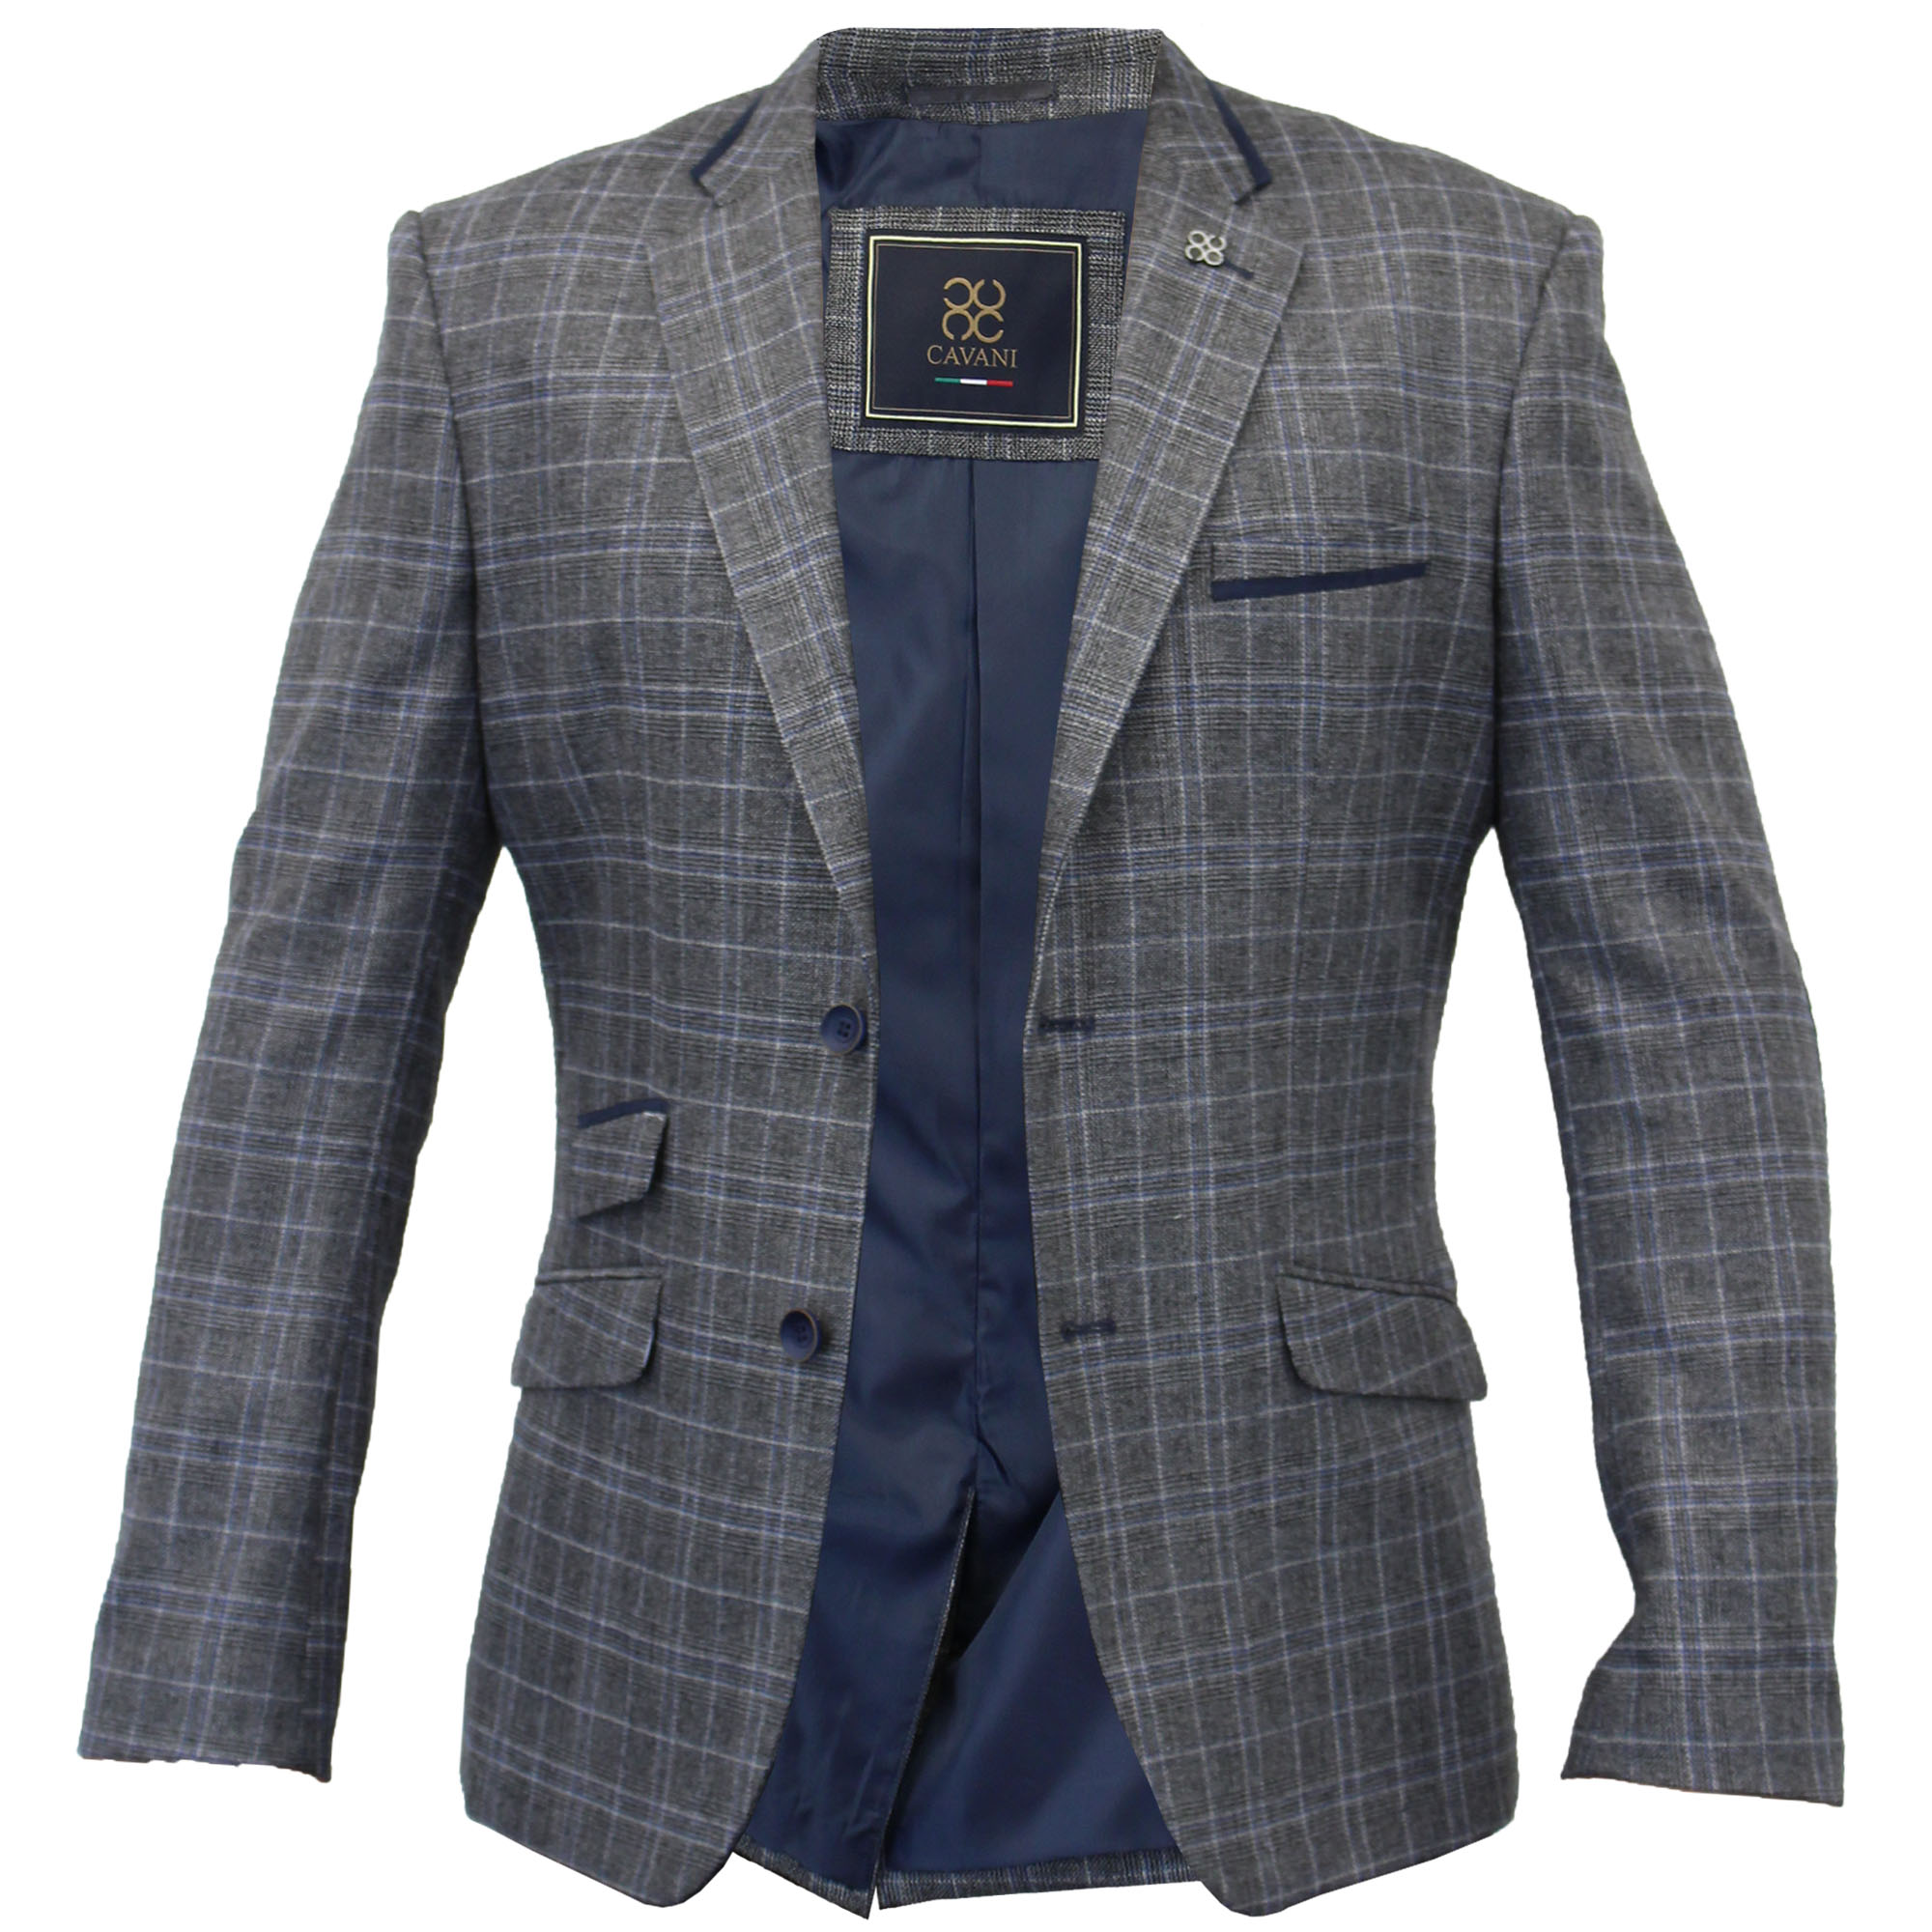 Mens Blazer Formal Coat Herringbone Checked Tweed Suit Jacket ...